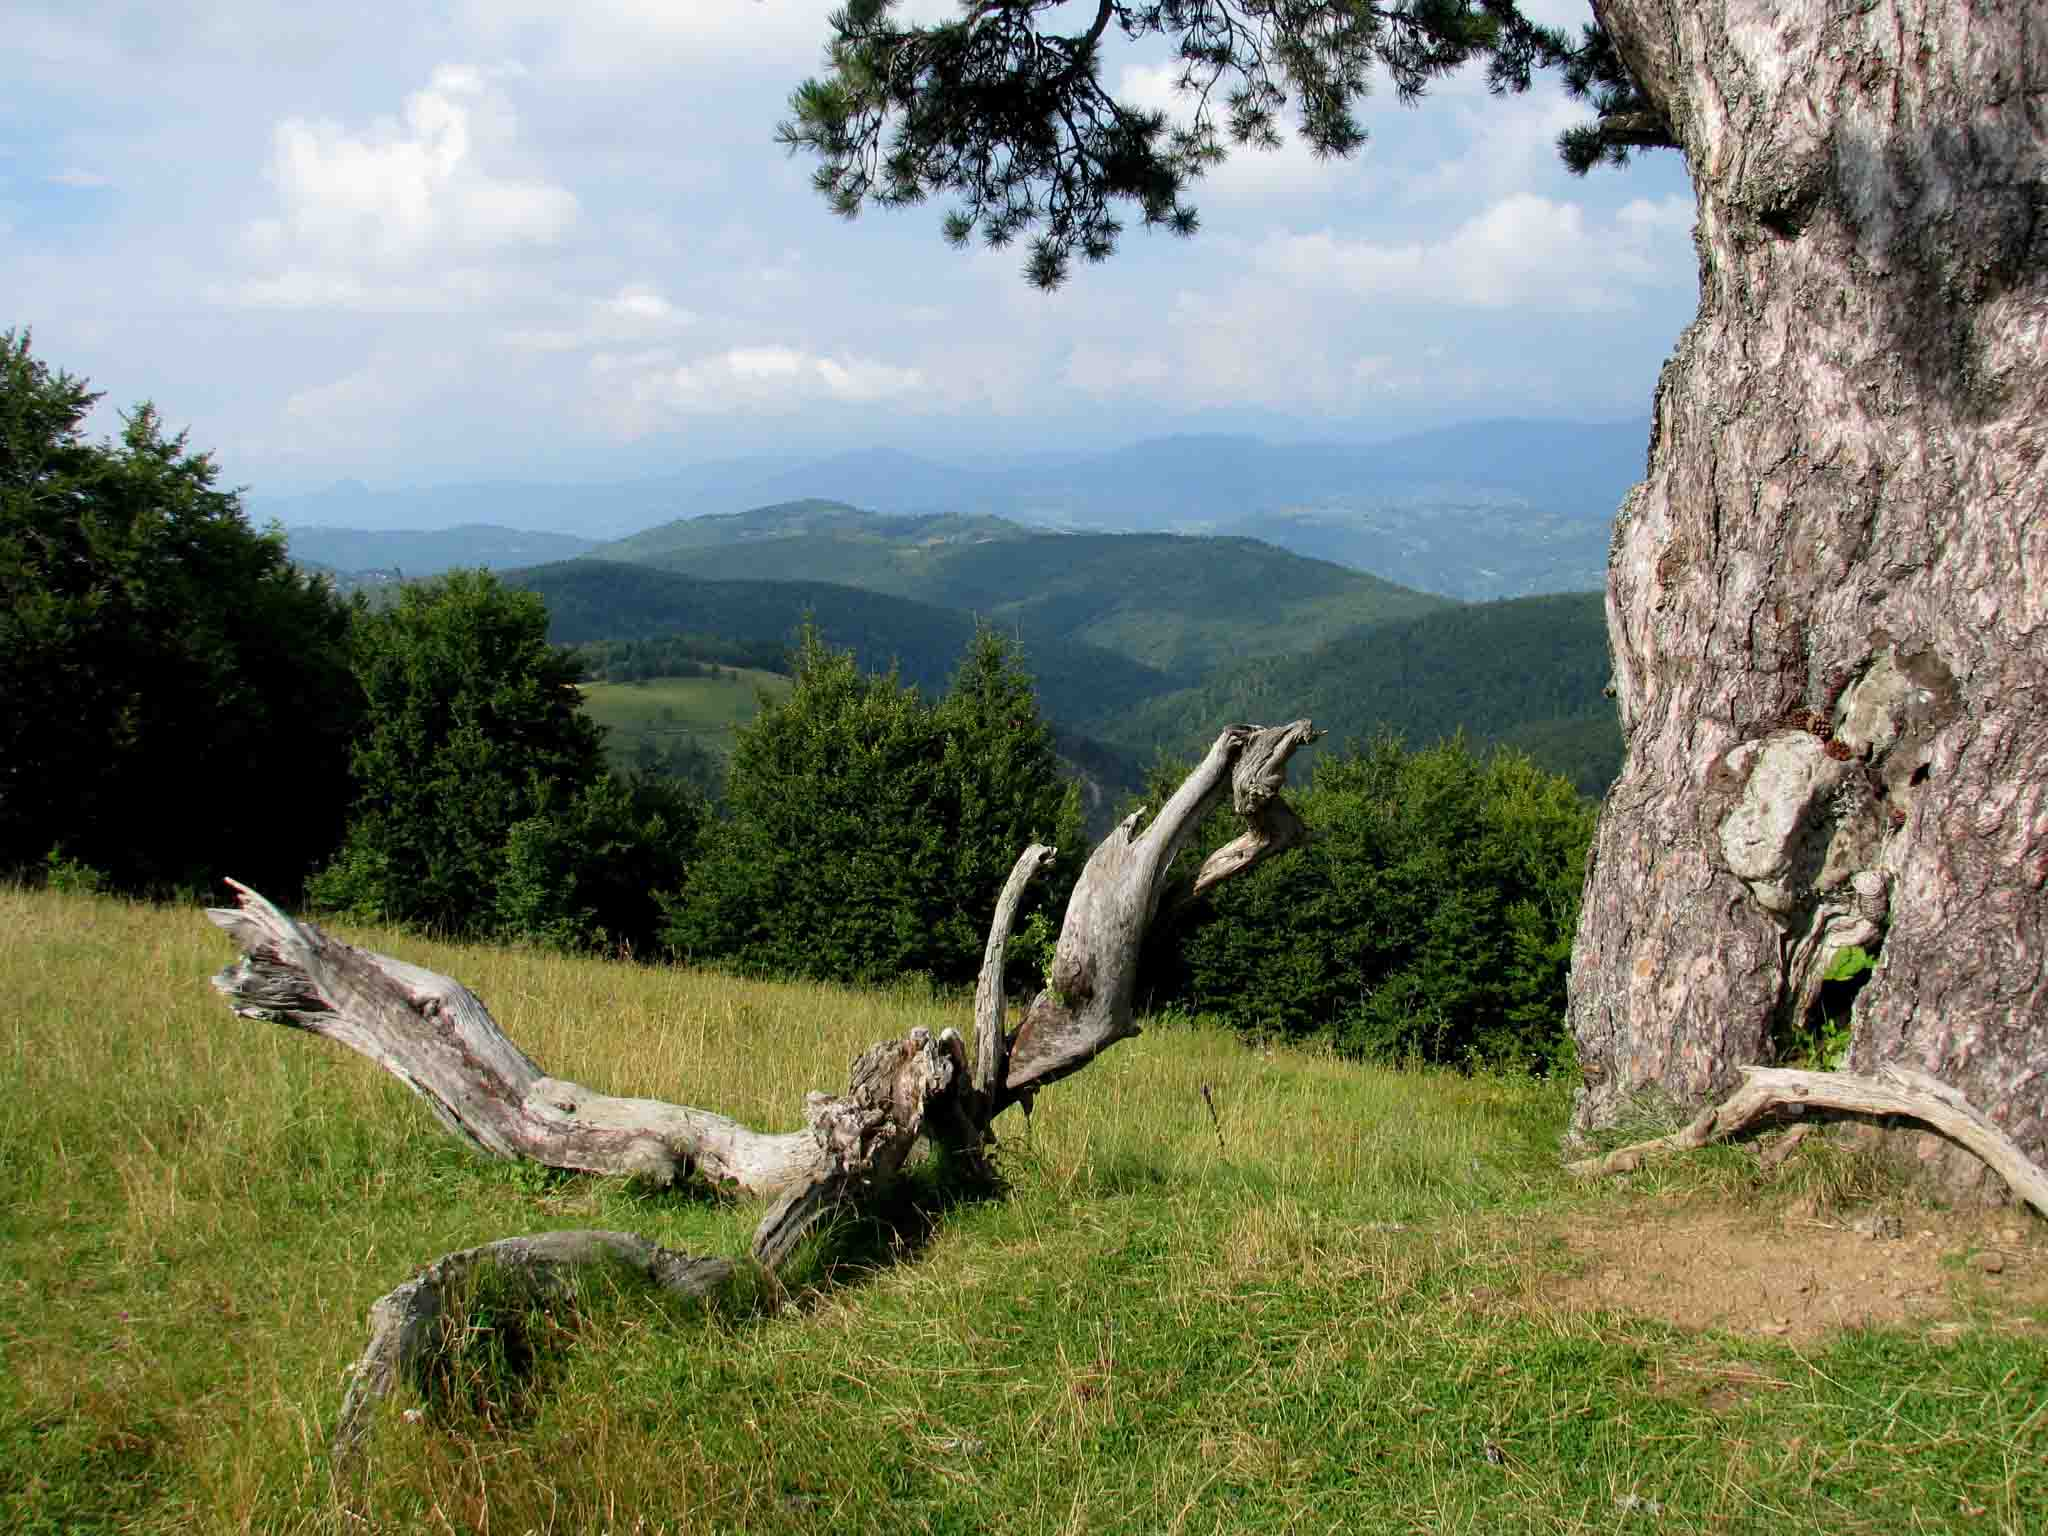 Serbia-travel-Kamena-Gora-pine-tree-branch-Glimpses-of-The-World